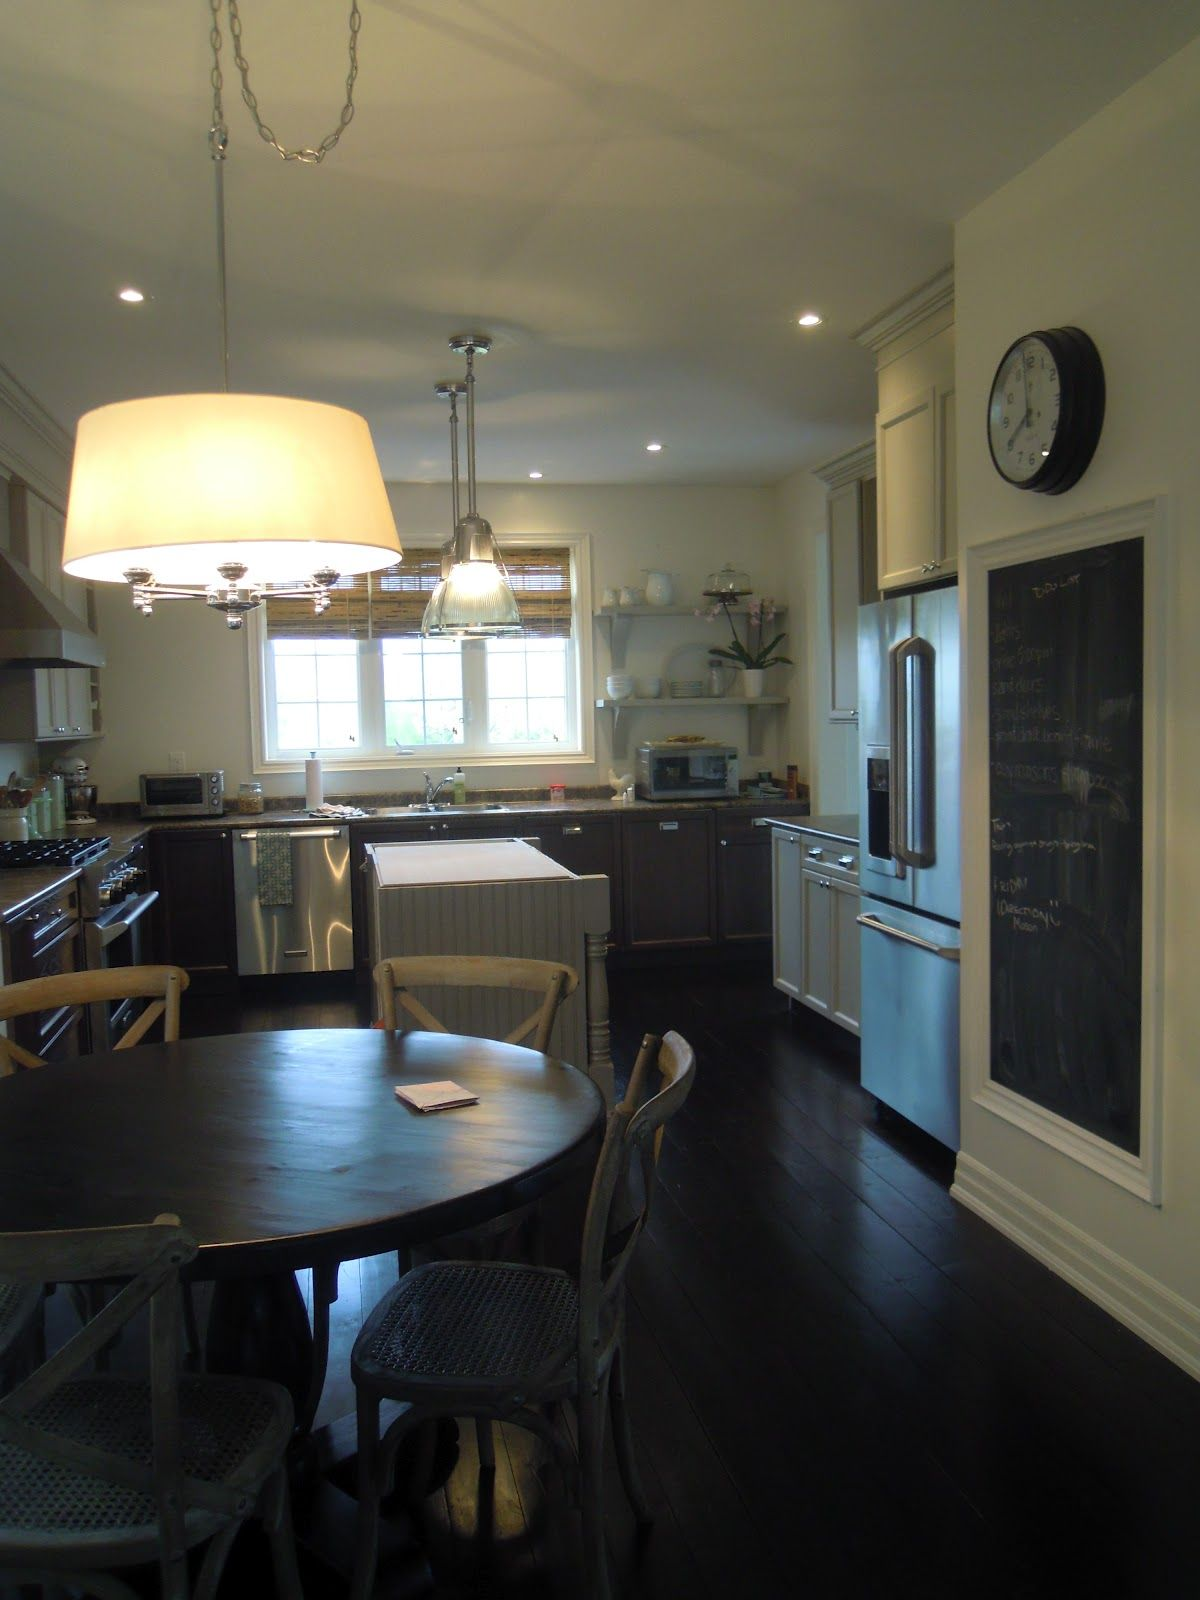 lighting above kitchen table cabinet door hardware swag light over heading for home